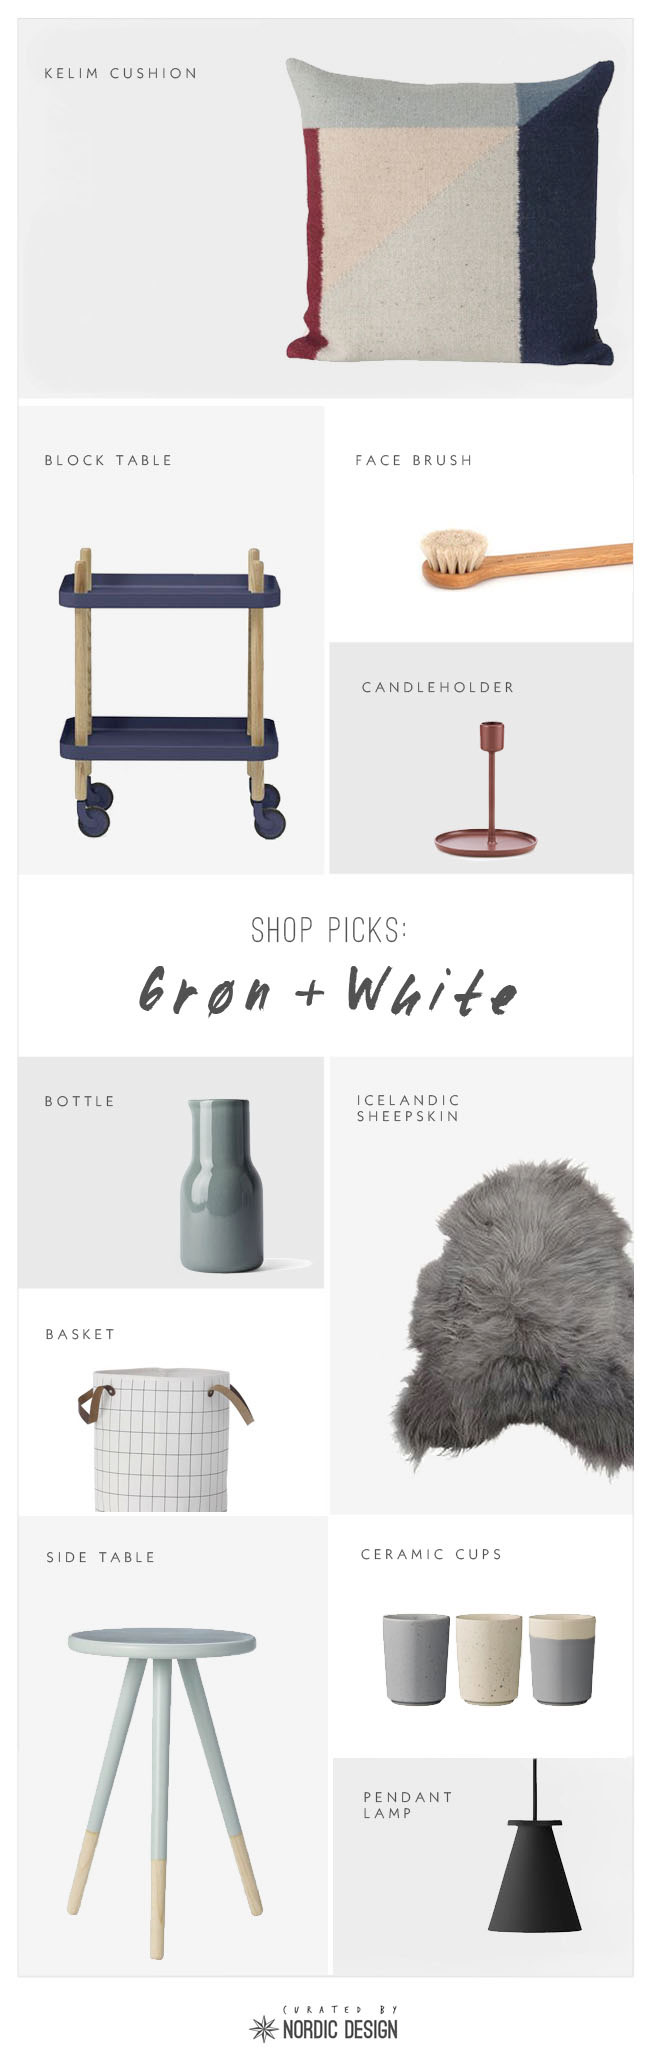 Shop-picks-GronandWhite-edit2